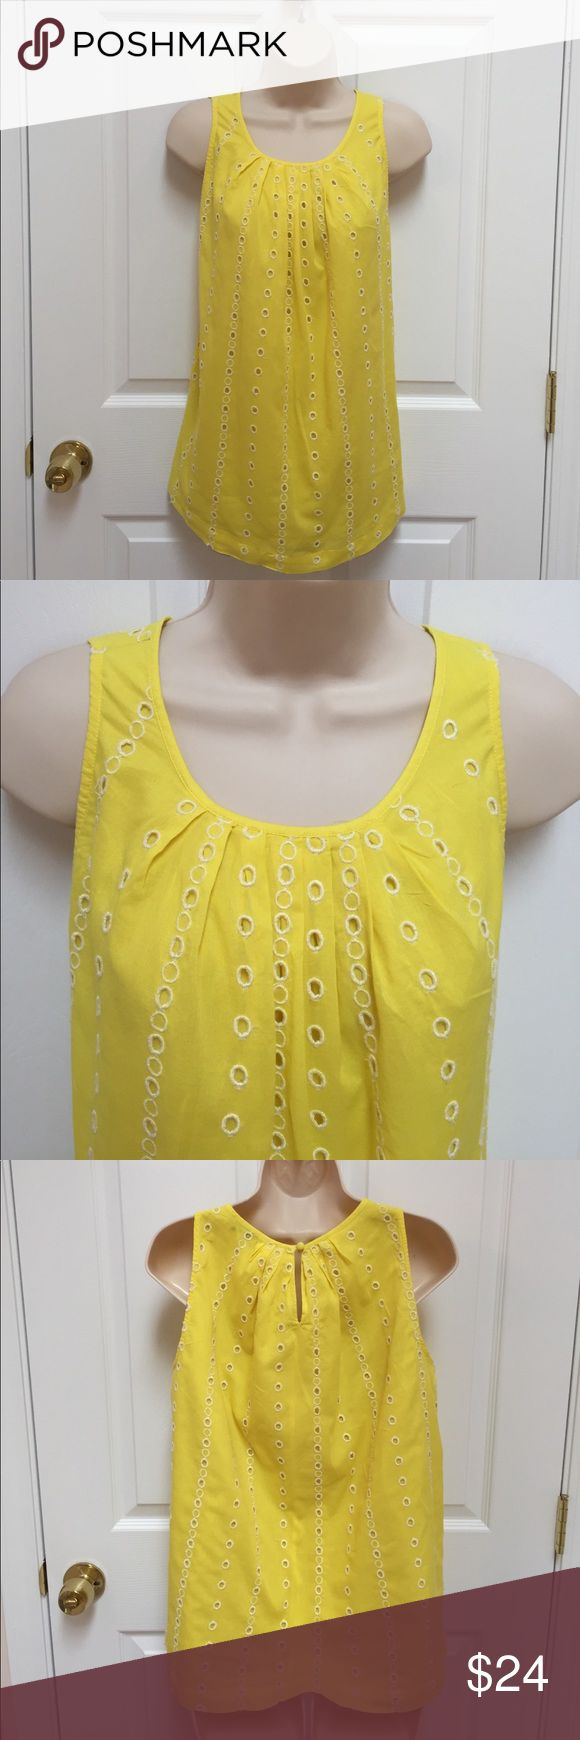 ANN TAYLOR LOFT SMALL YELLOW SMOCK SLEEVELESS Women's size small smock, sleeveless.  ANN TAYLOR LOFT BRAND.  Material is 100% cotton, all lined, lightweight and cool for summer.  Yellow with white embroidered eyelet circles .  EXCELLENT CONDITION, FRESHLY LAUNDERED AND PRESSED.  FREE FROM SMOKE AND PETS.  Thanks for looking! 👀. NCMCOLLECTIONS Ann Taylor Loft Tops Tunics